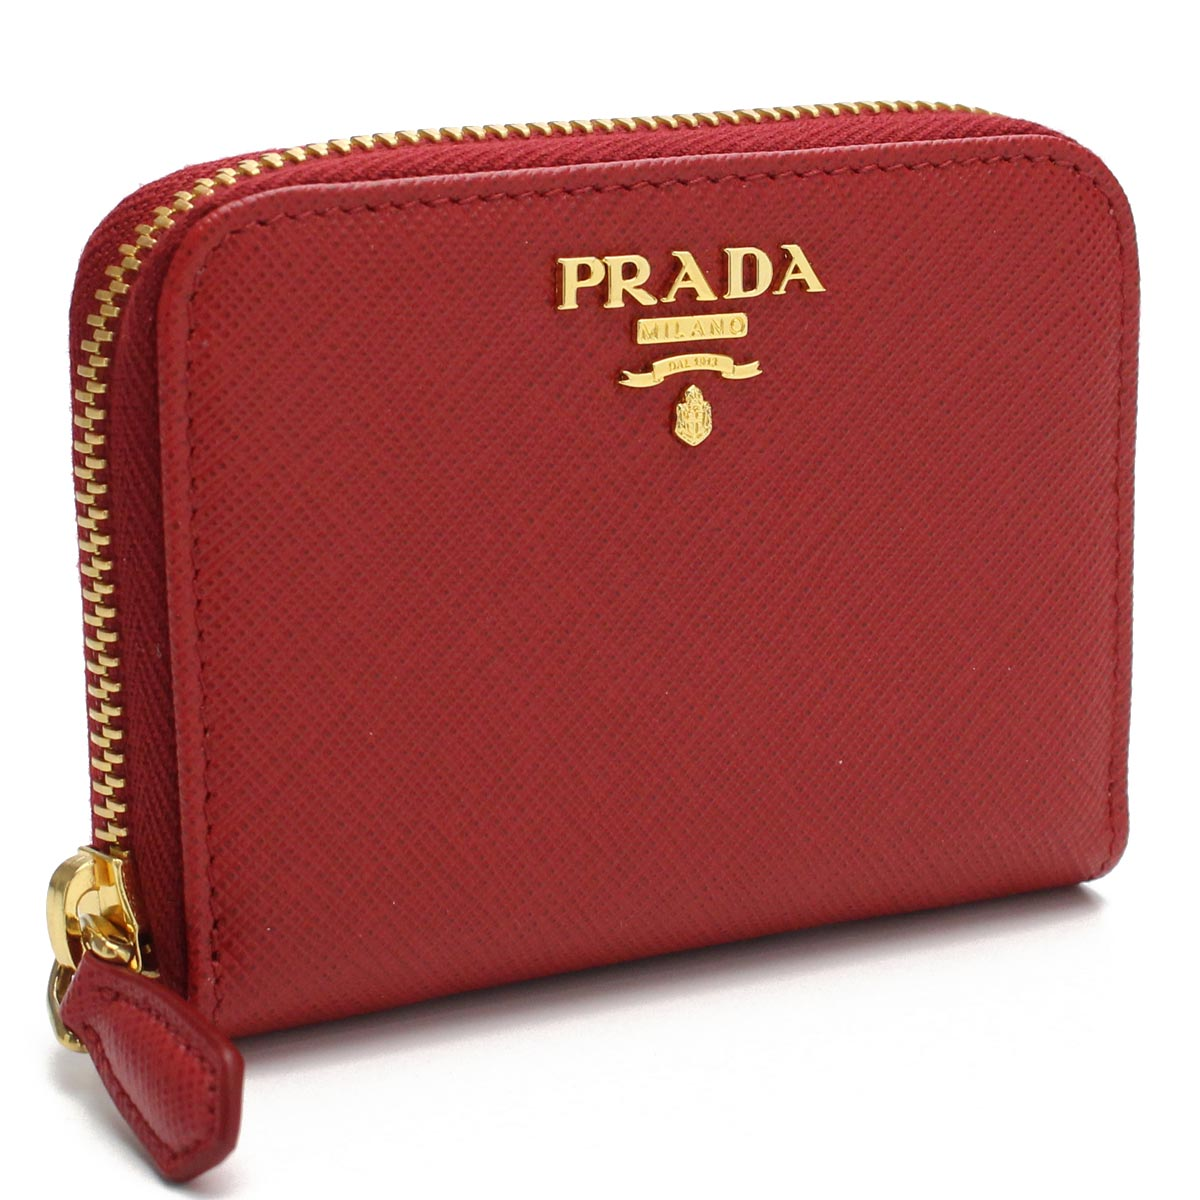 0ae89b55c32 Bighit The total brand wholesale  Prada PRADA round fastener coin case coin  purse 1MM268 QWA F068Z FUOCO red system